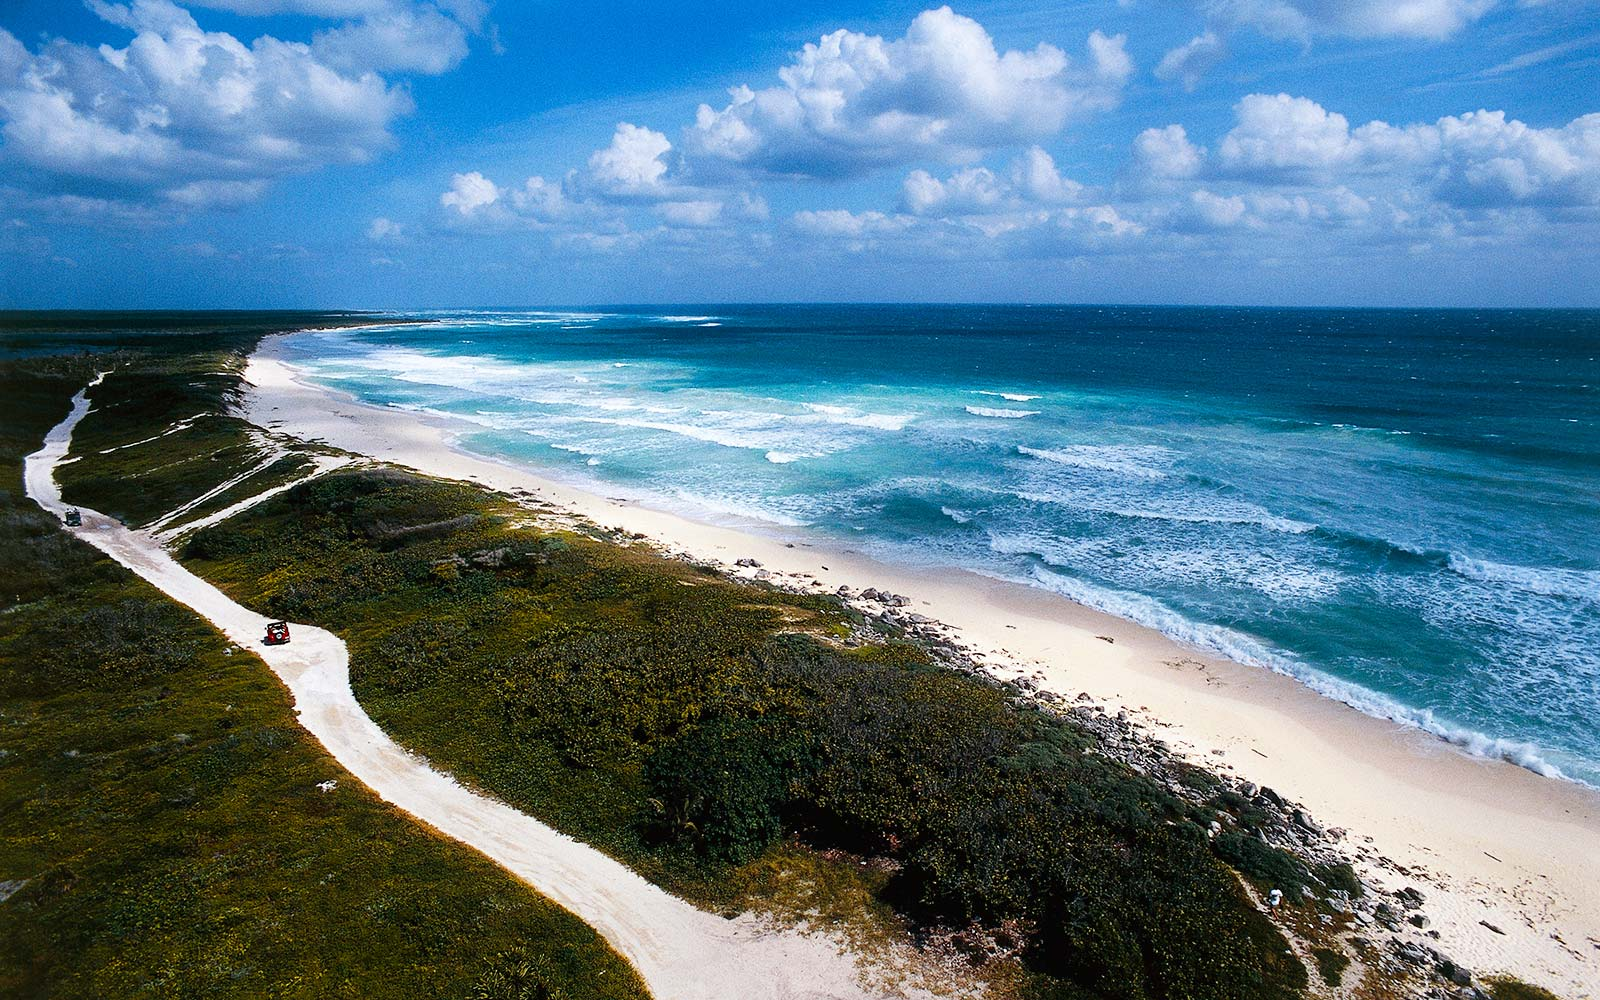 White sand beach and road on the east coast of Cozumel island, Quintana Roo, Mexico